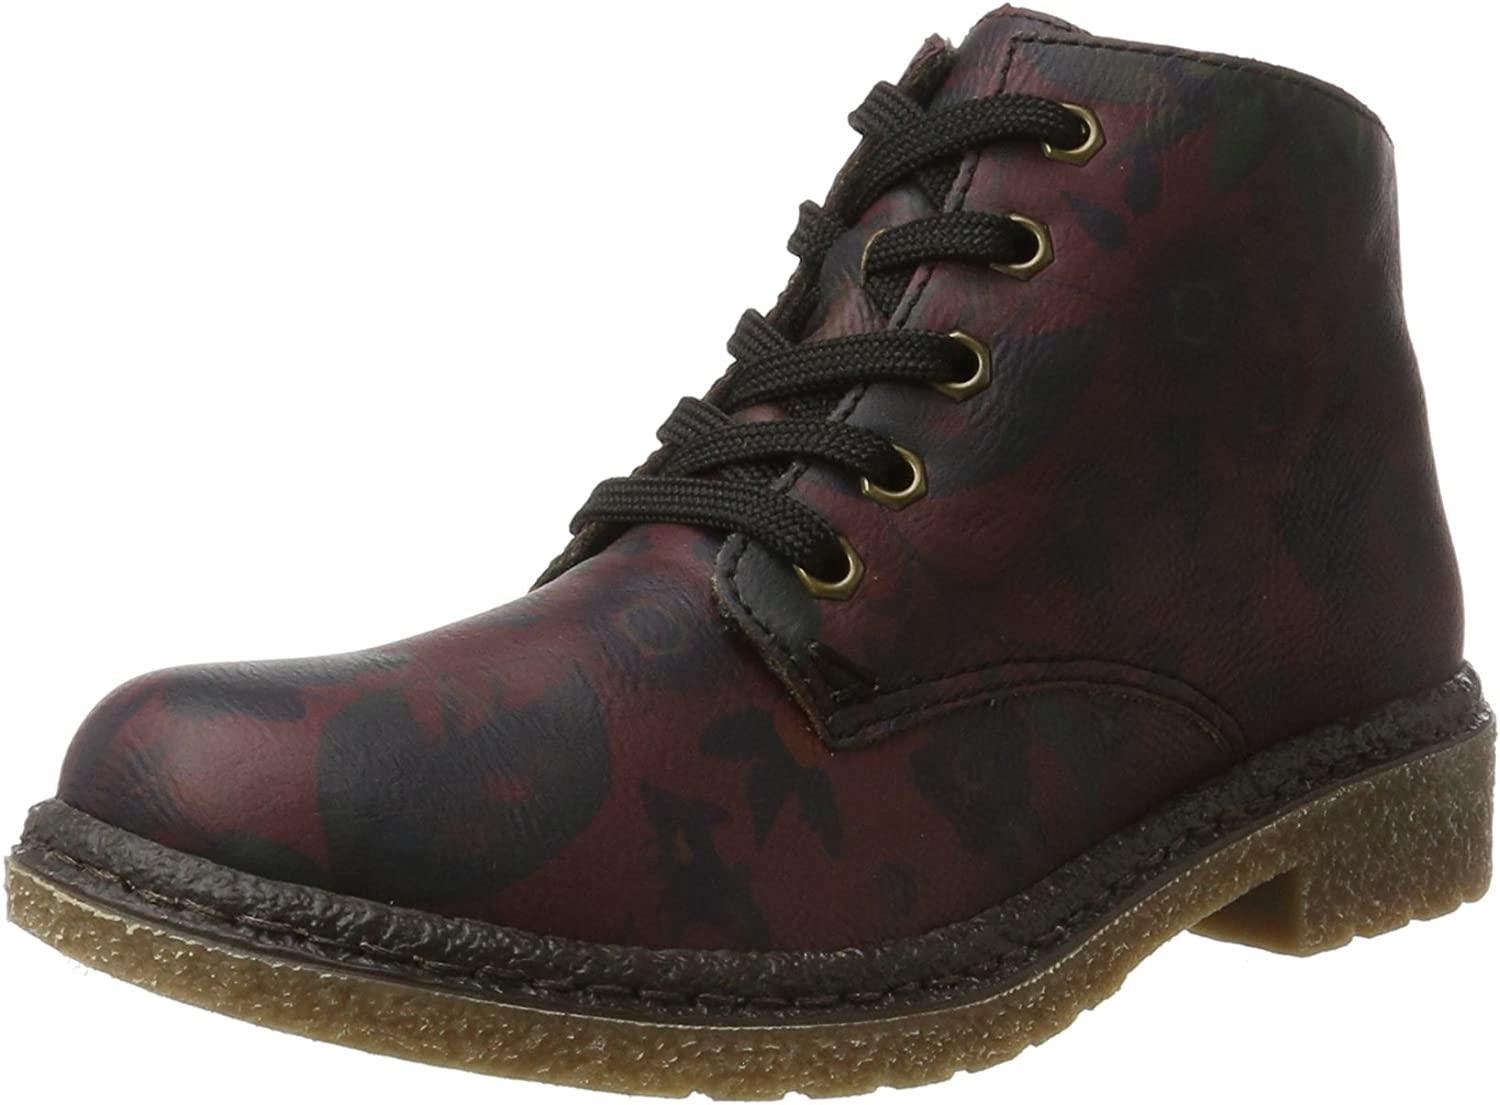 Rieker Women Ankle Boots red, (wine) 53240-35